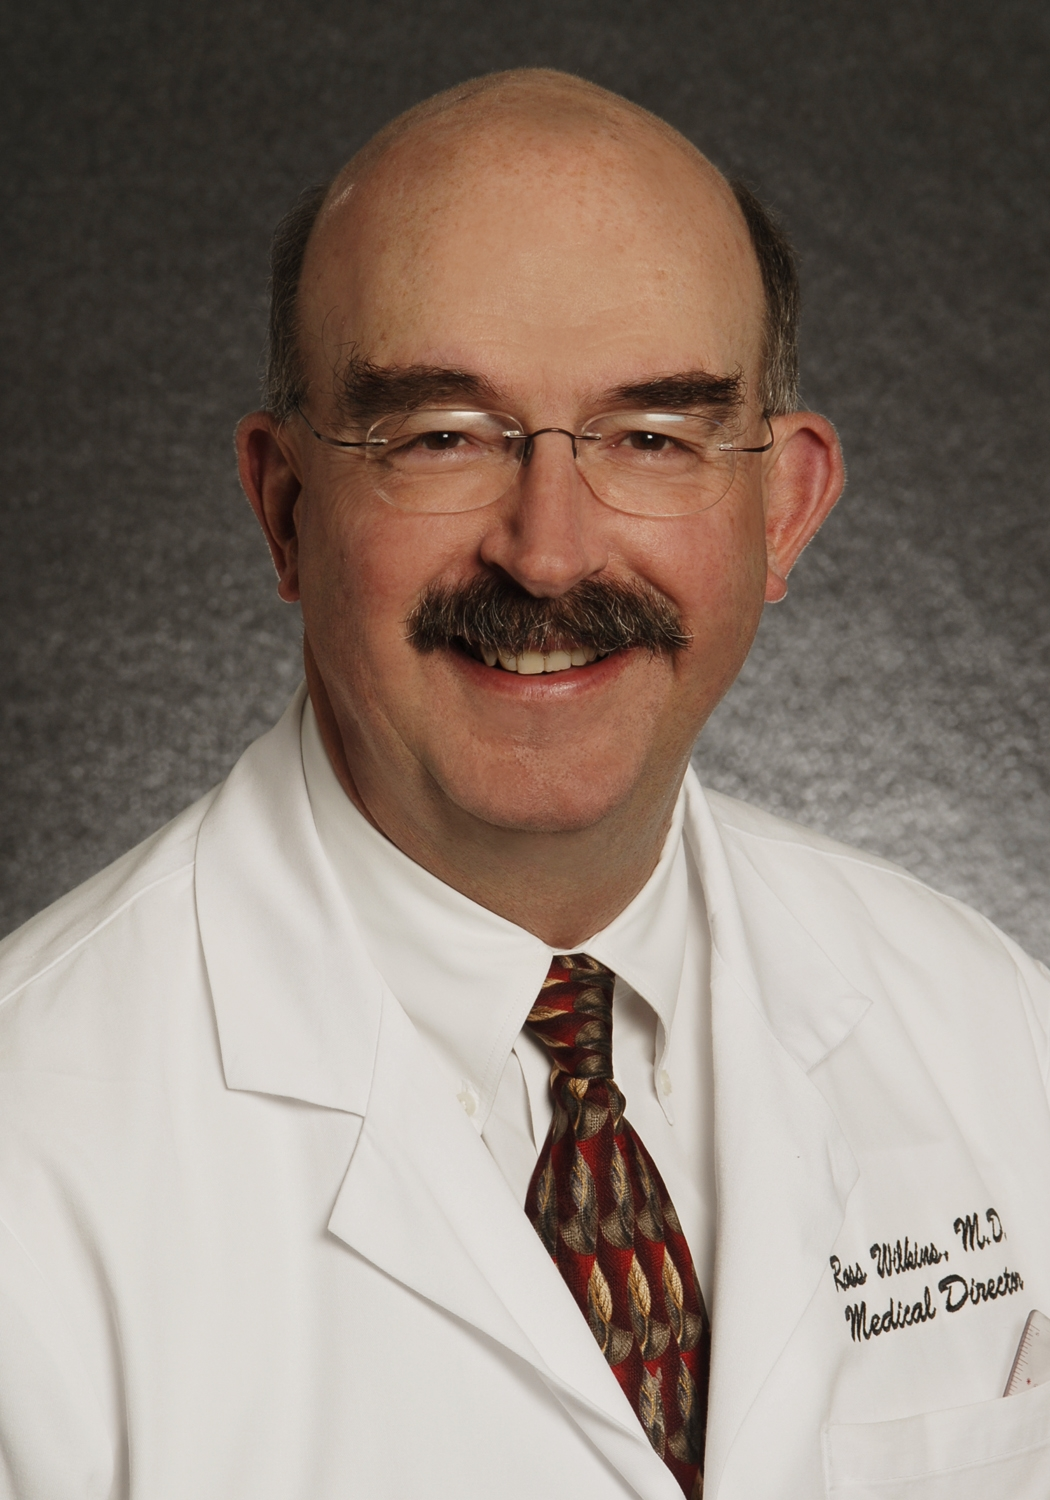 Ross M Wilkins, MD